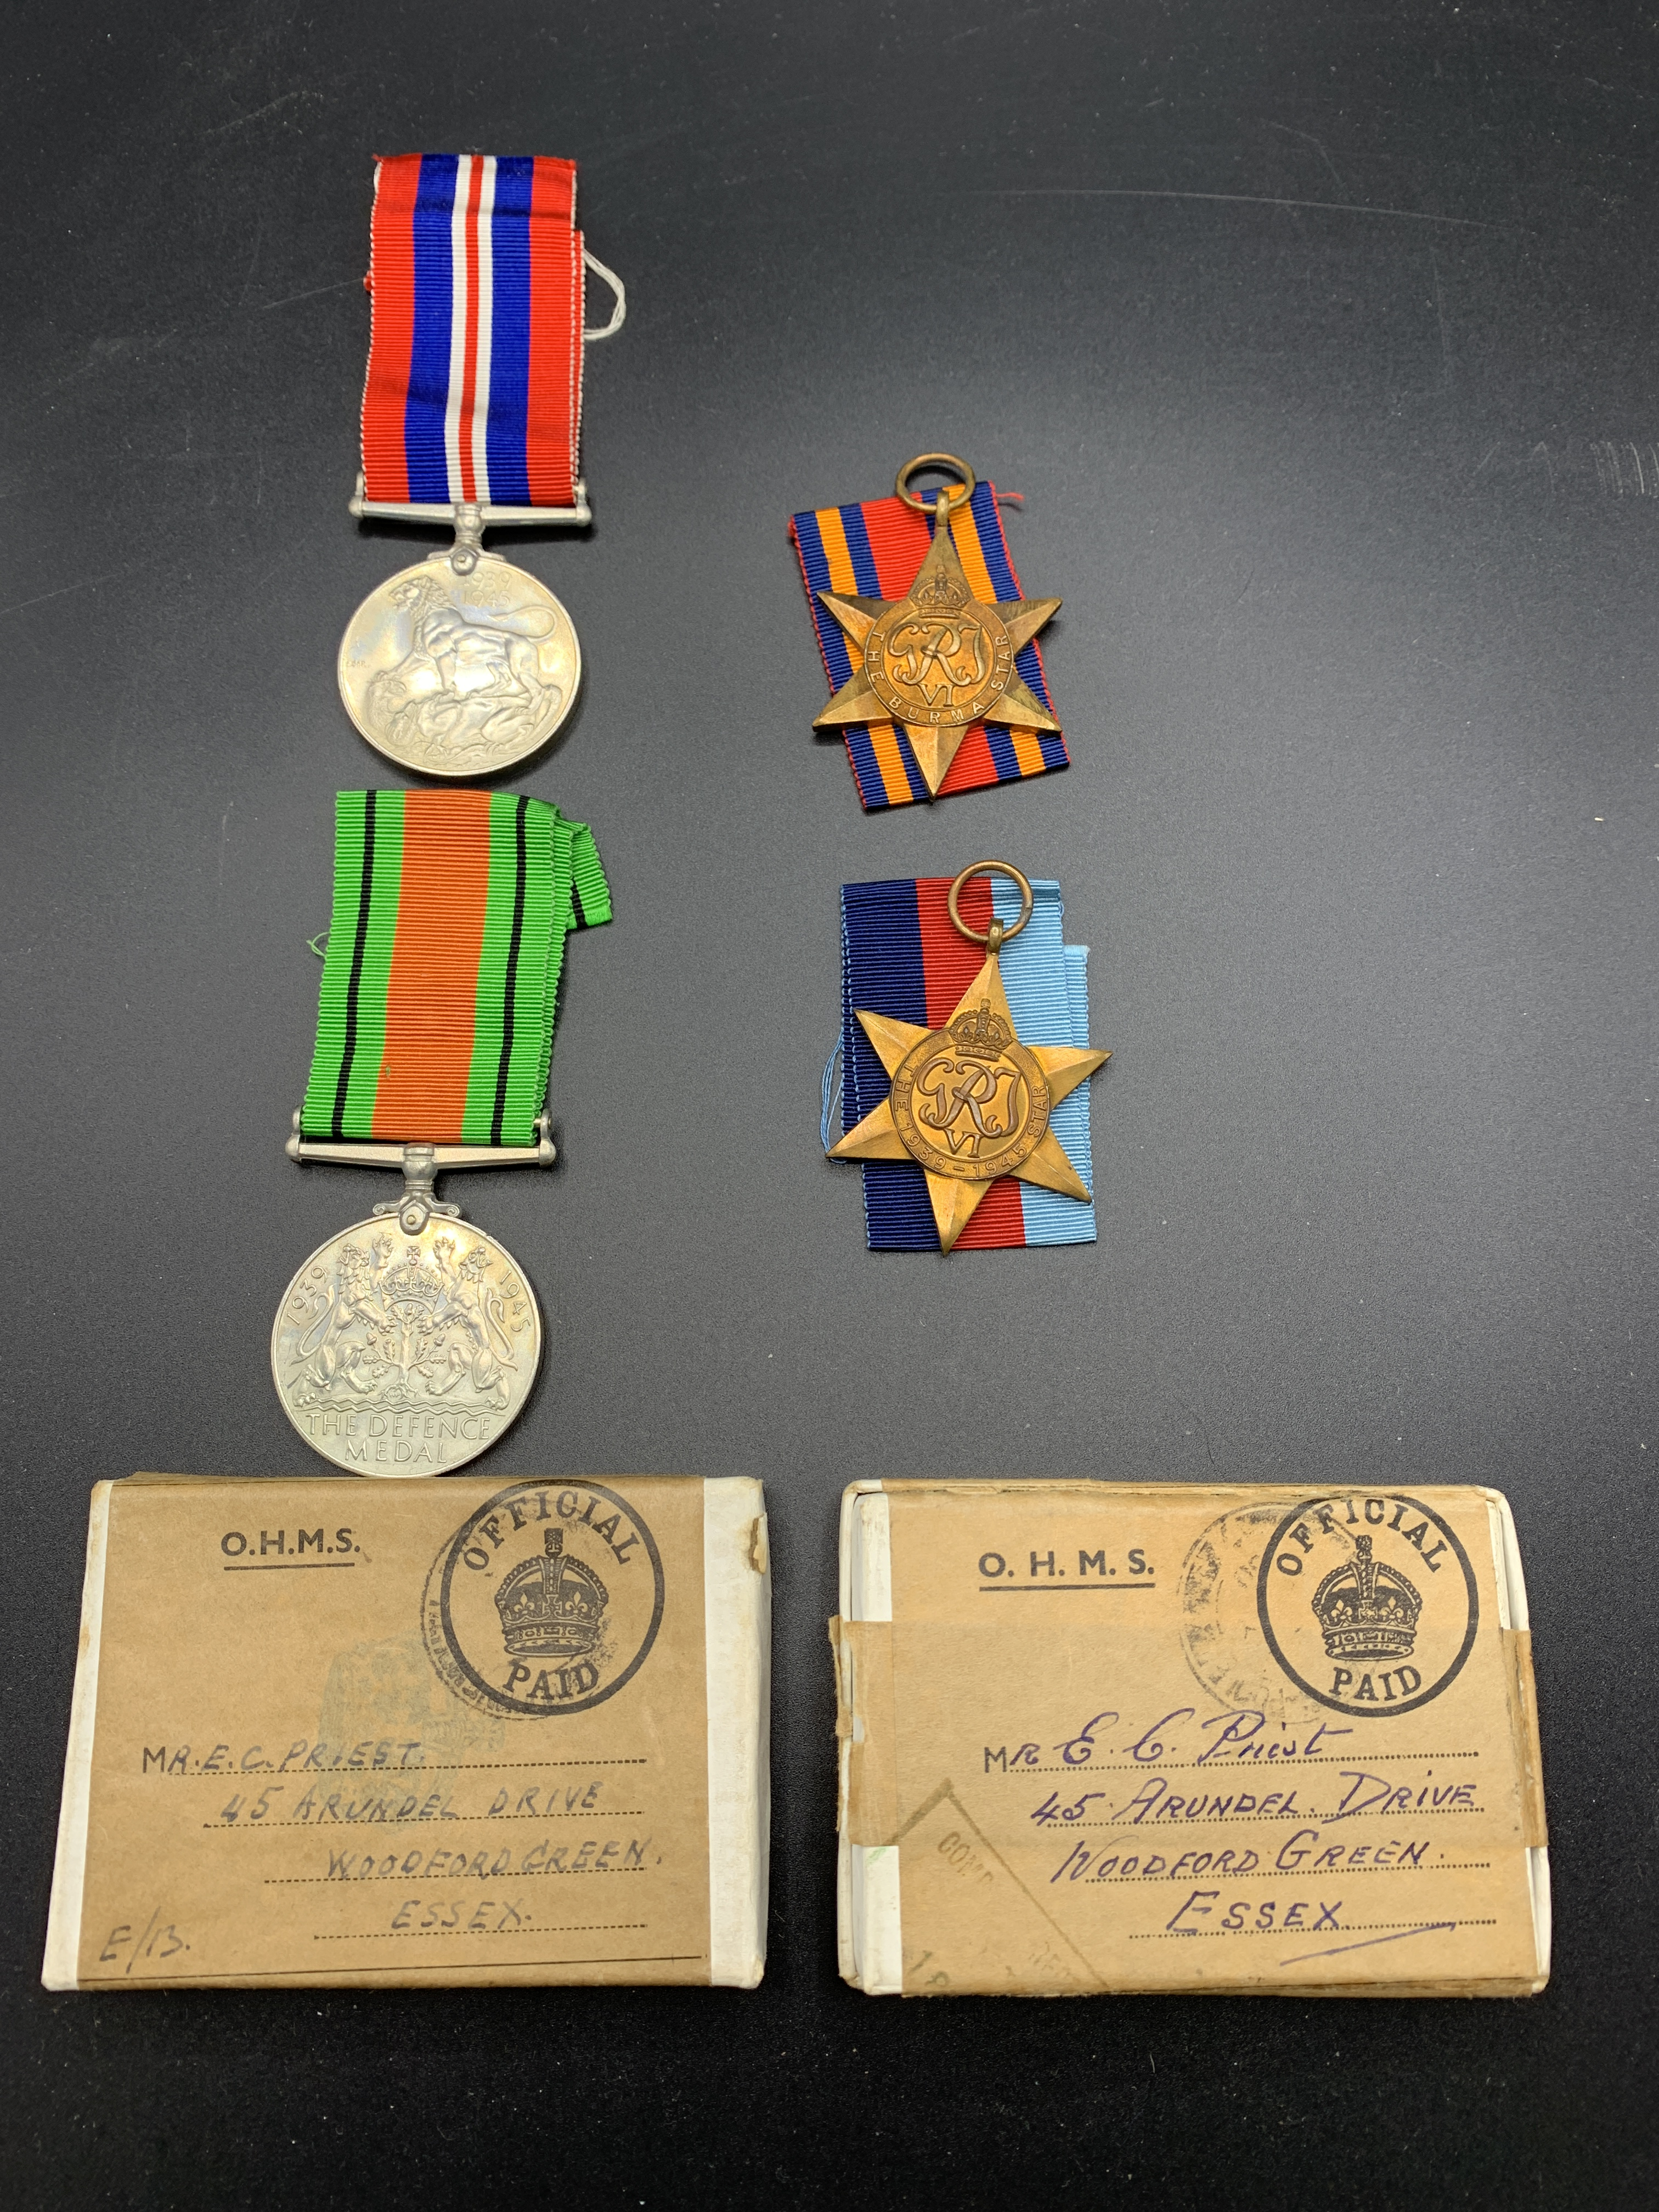 Medals from 1939-1945 and three commemorative coins